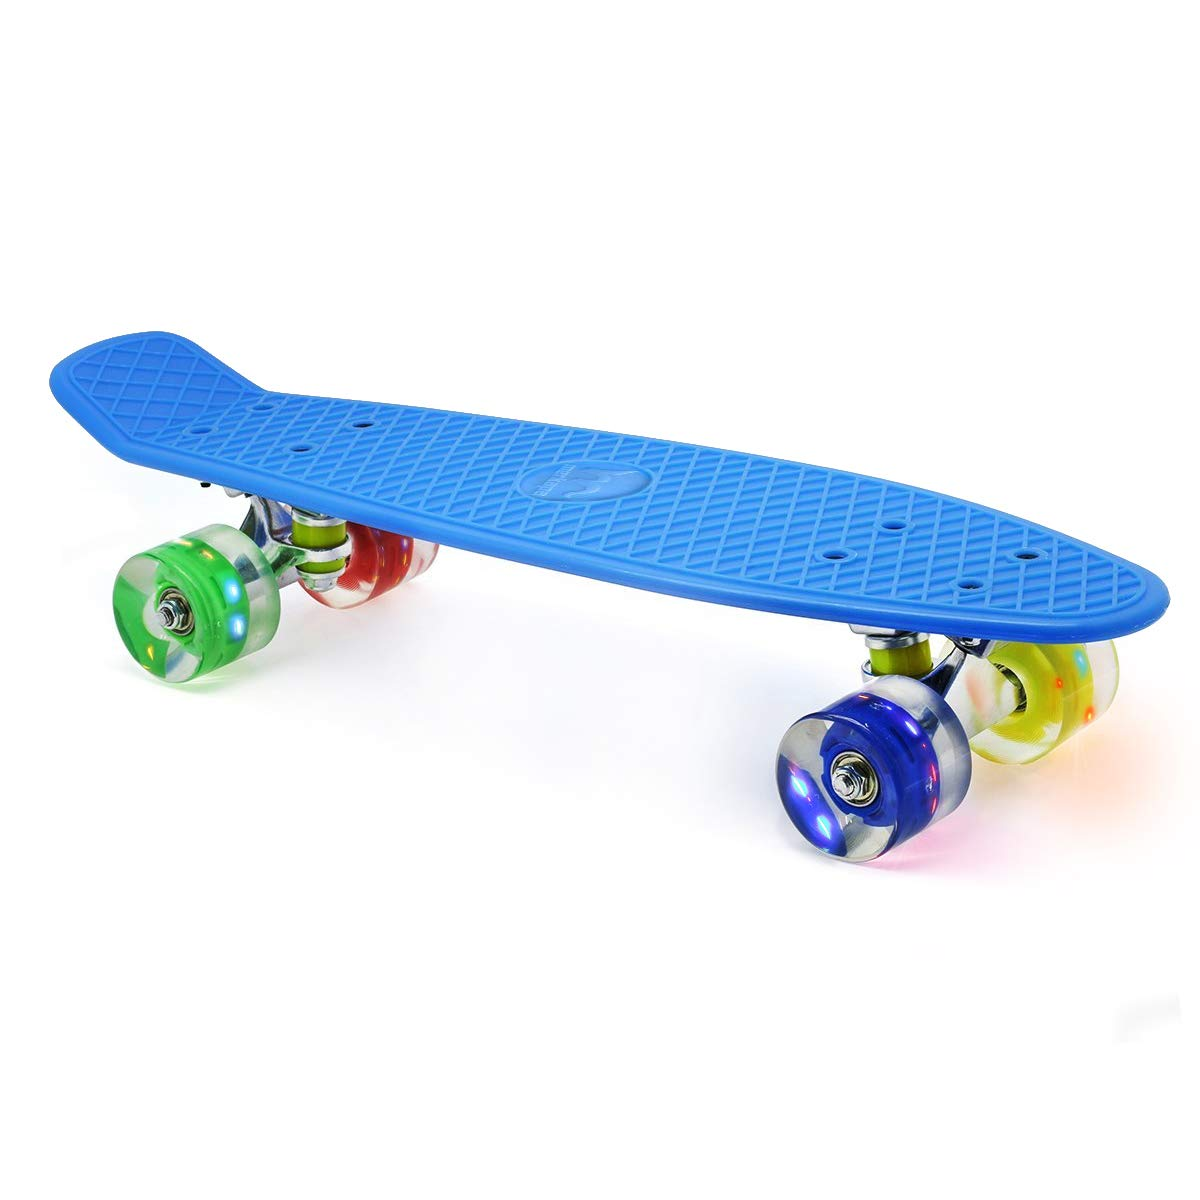 M Merkapa 22'' Complete Skateboard with Colorful LED Light Up Wheels for Kids, Boys, Girls, Youths, Beginners(Blue) by M Merkapa